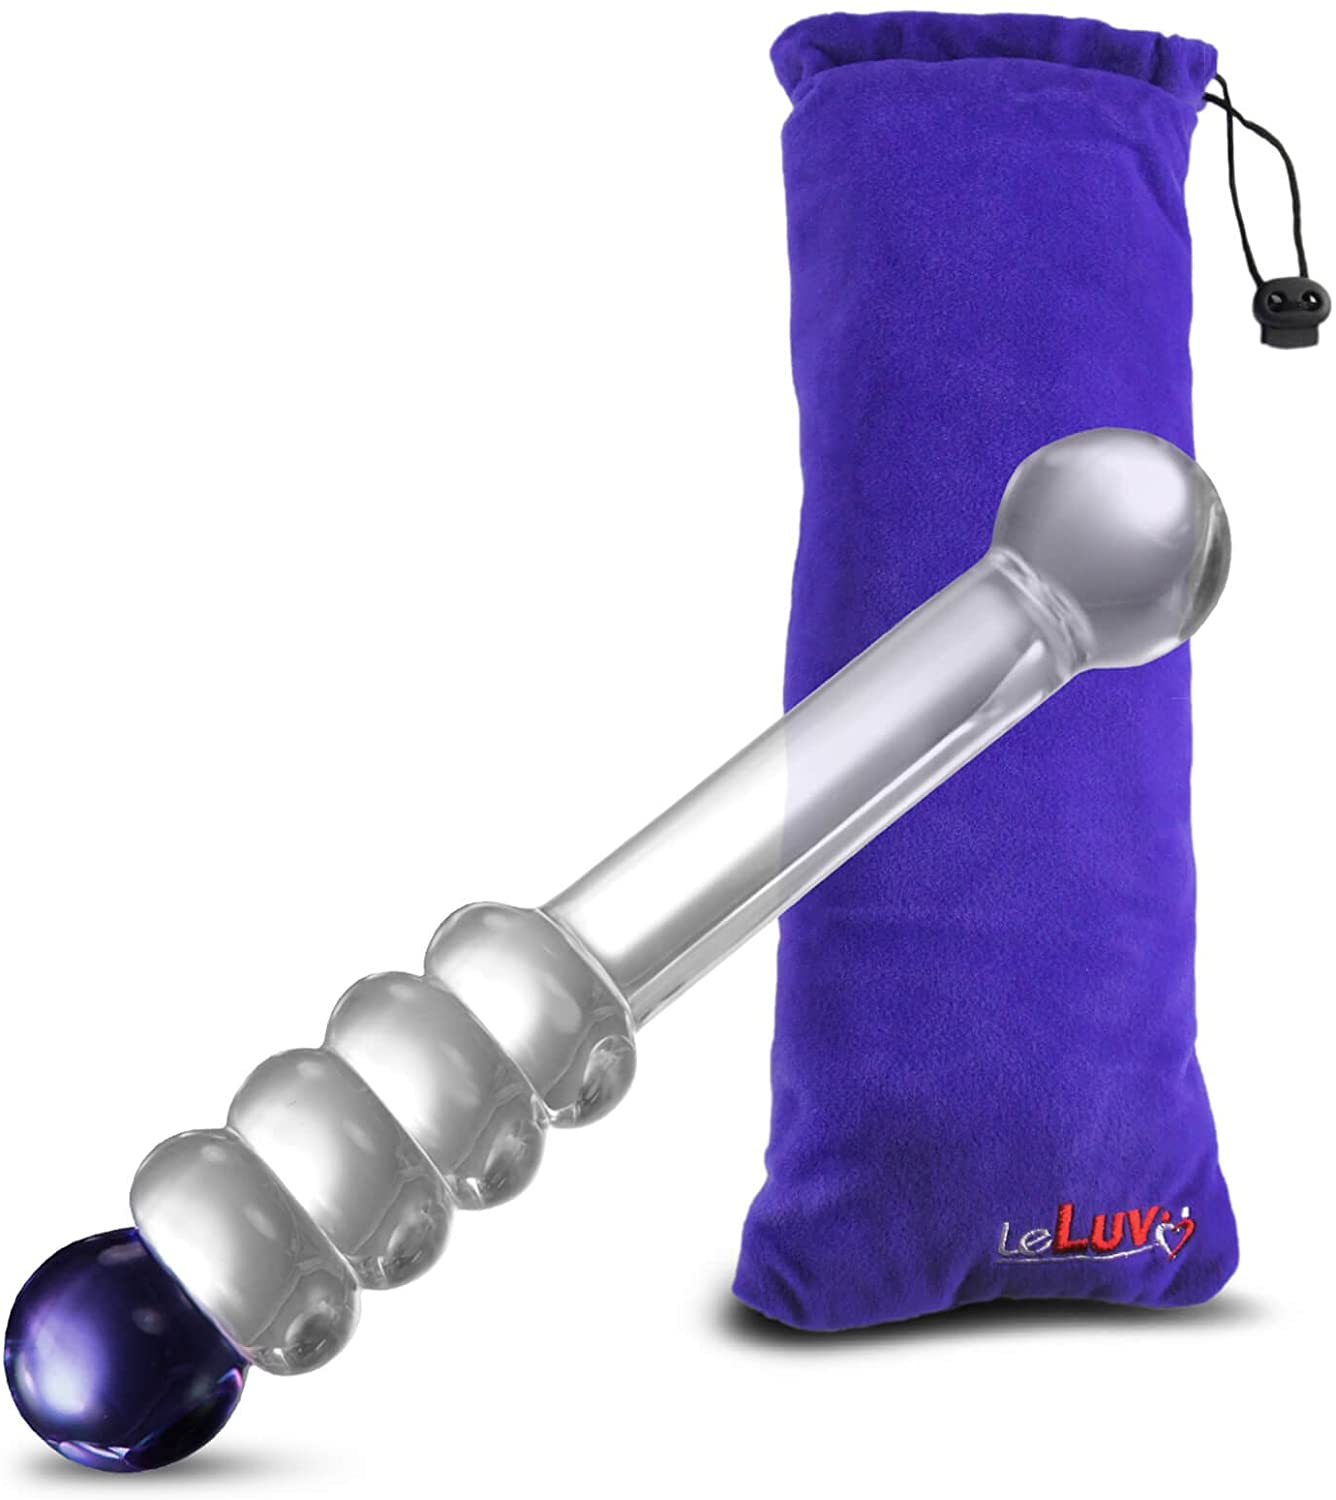 LeLuv Glass Dildo 8 inch Mystic Wand Beads Blue Bundle with Premium Padded Pouch